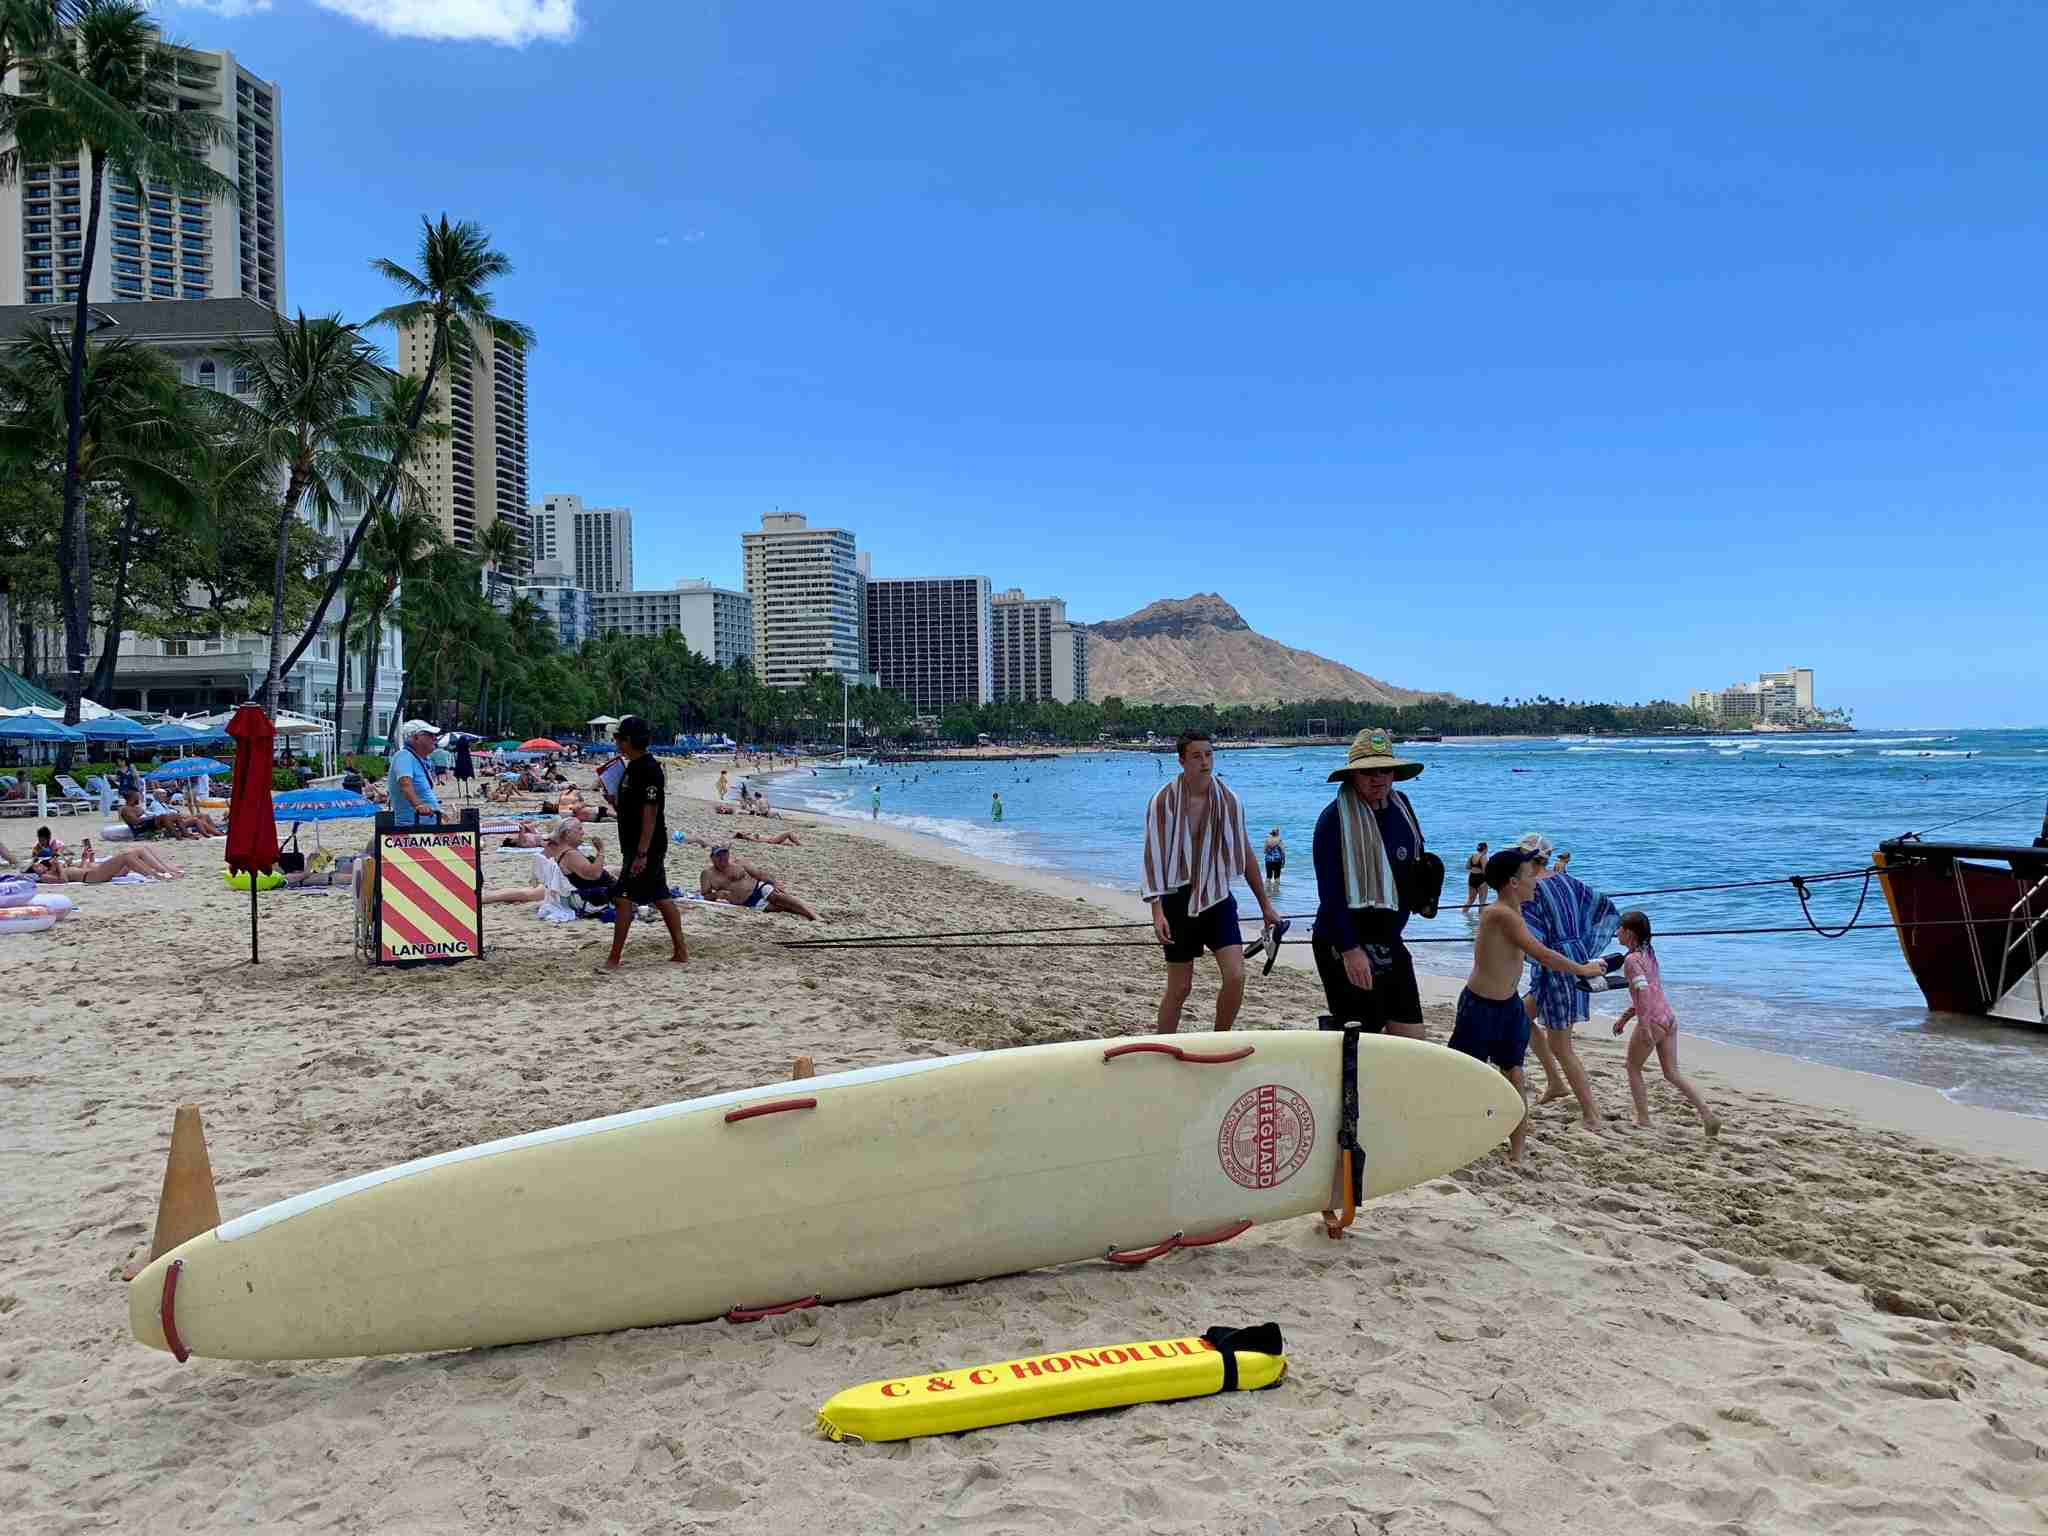 oahu-hawaii-waikiki-beach-2019